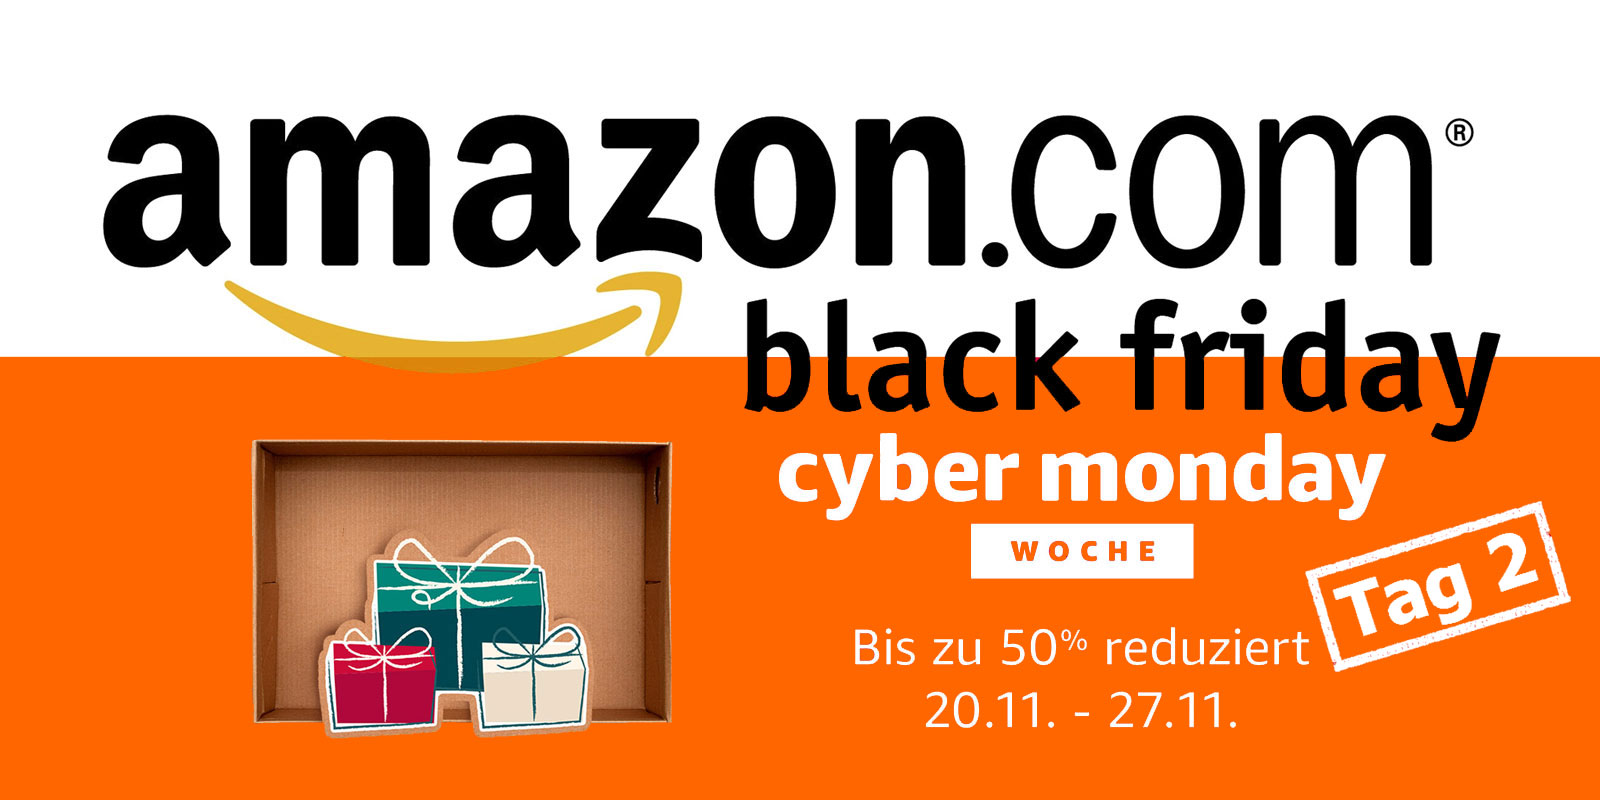 Amazon Cyber Monday Woche Und Black Friday 2017 Tag 2 Smart Home Area